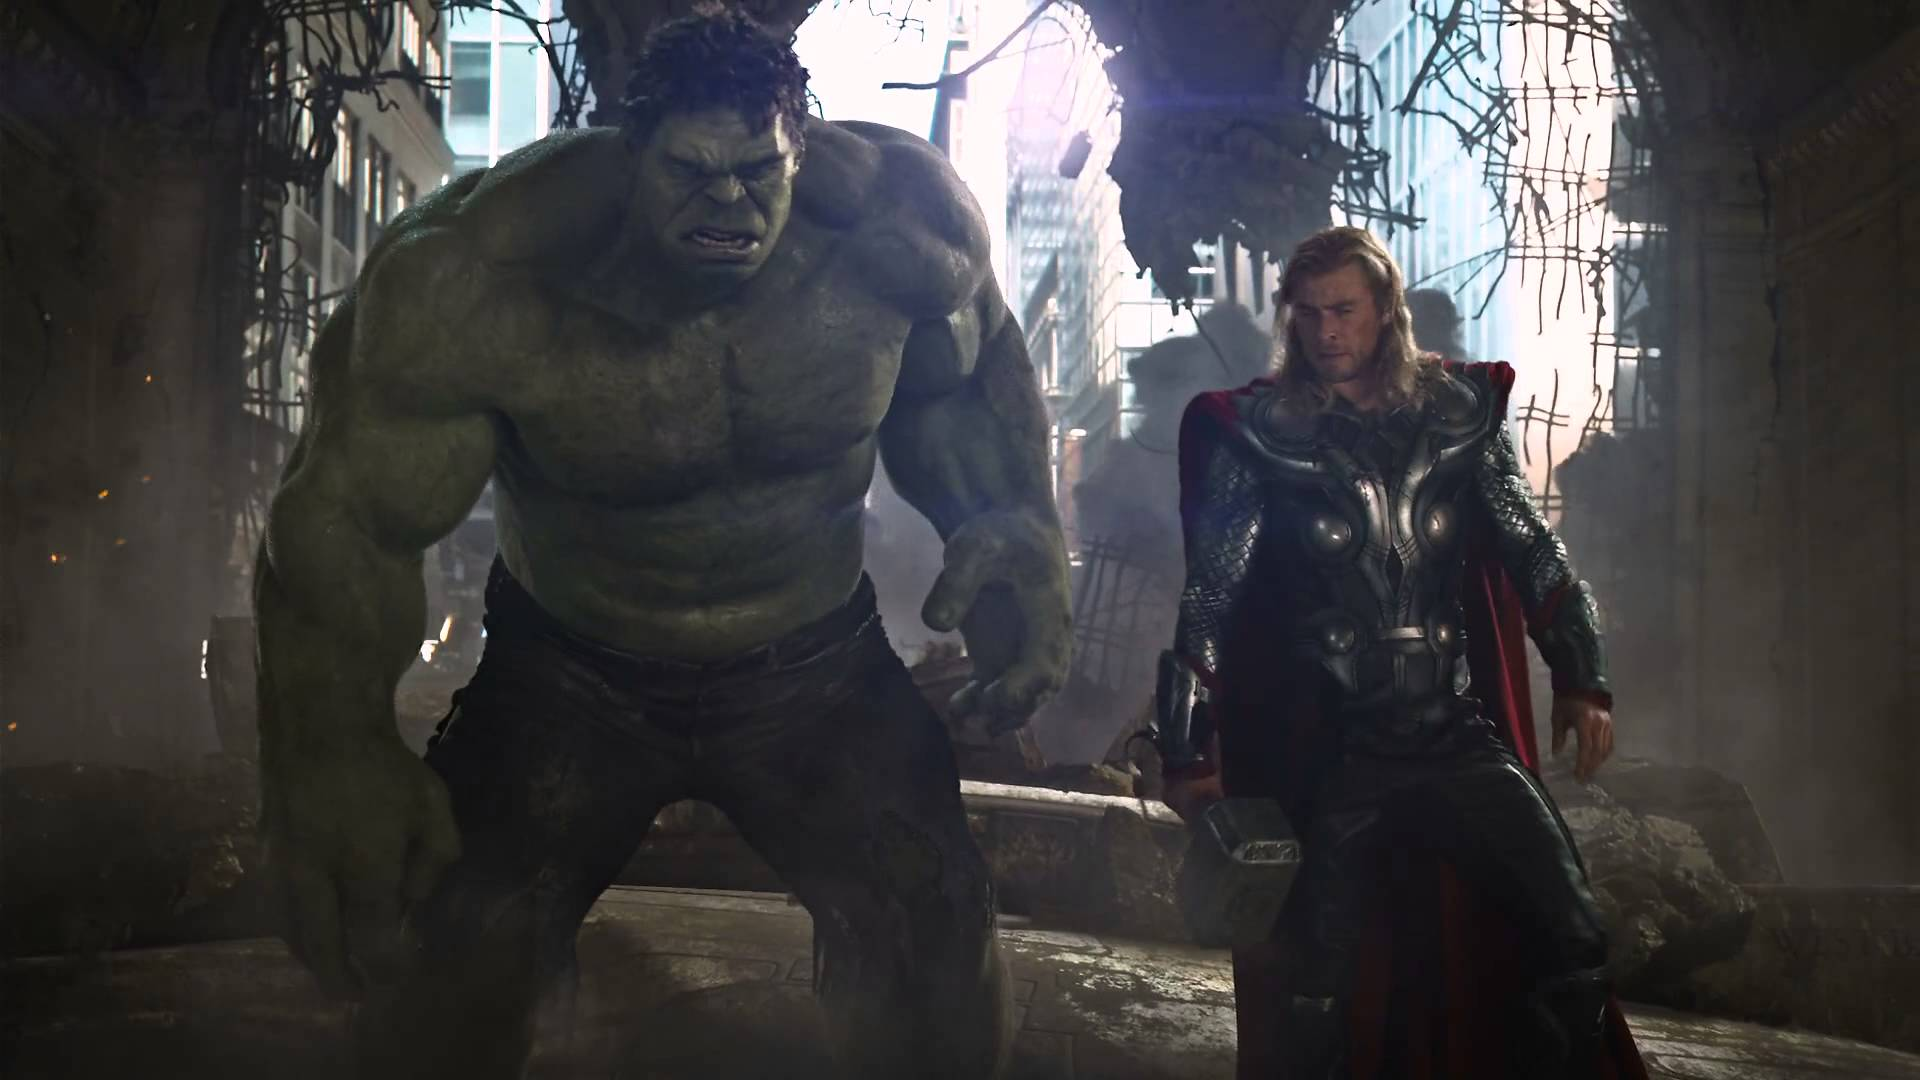 the-hulk-might-return-in-thor-ragnarok